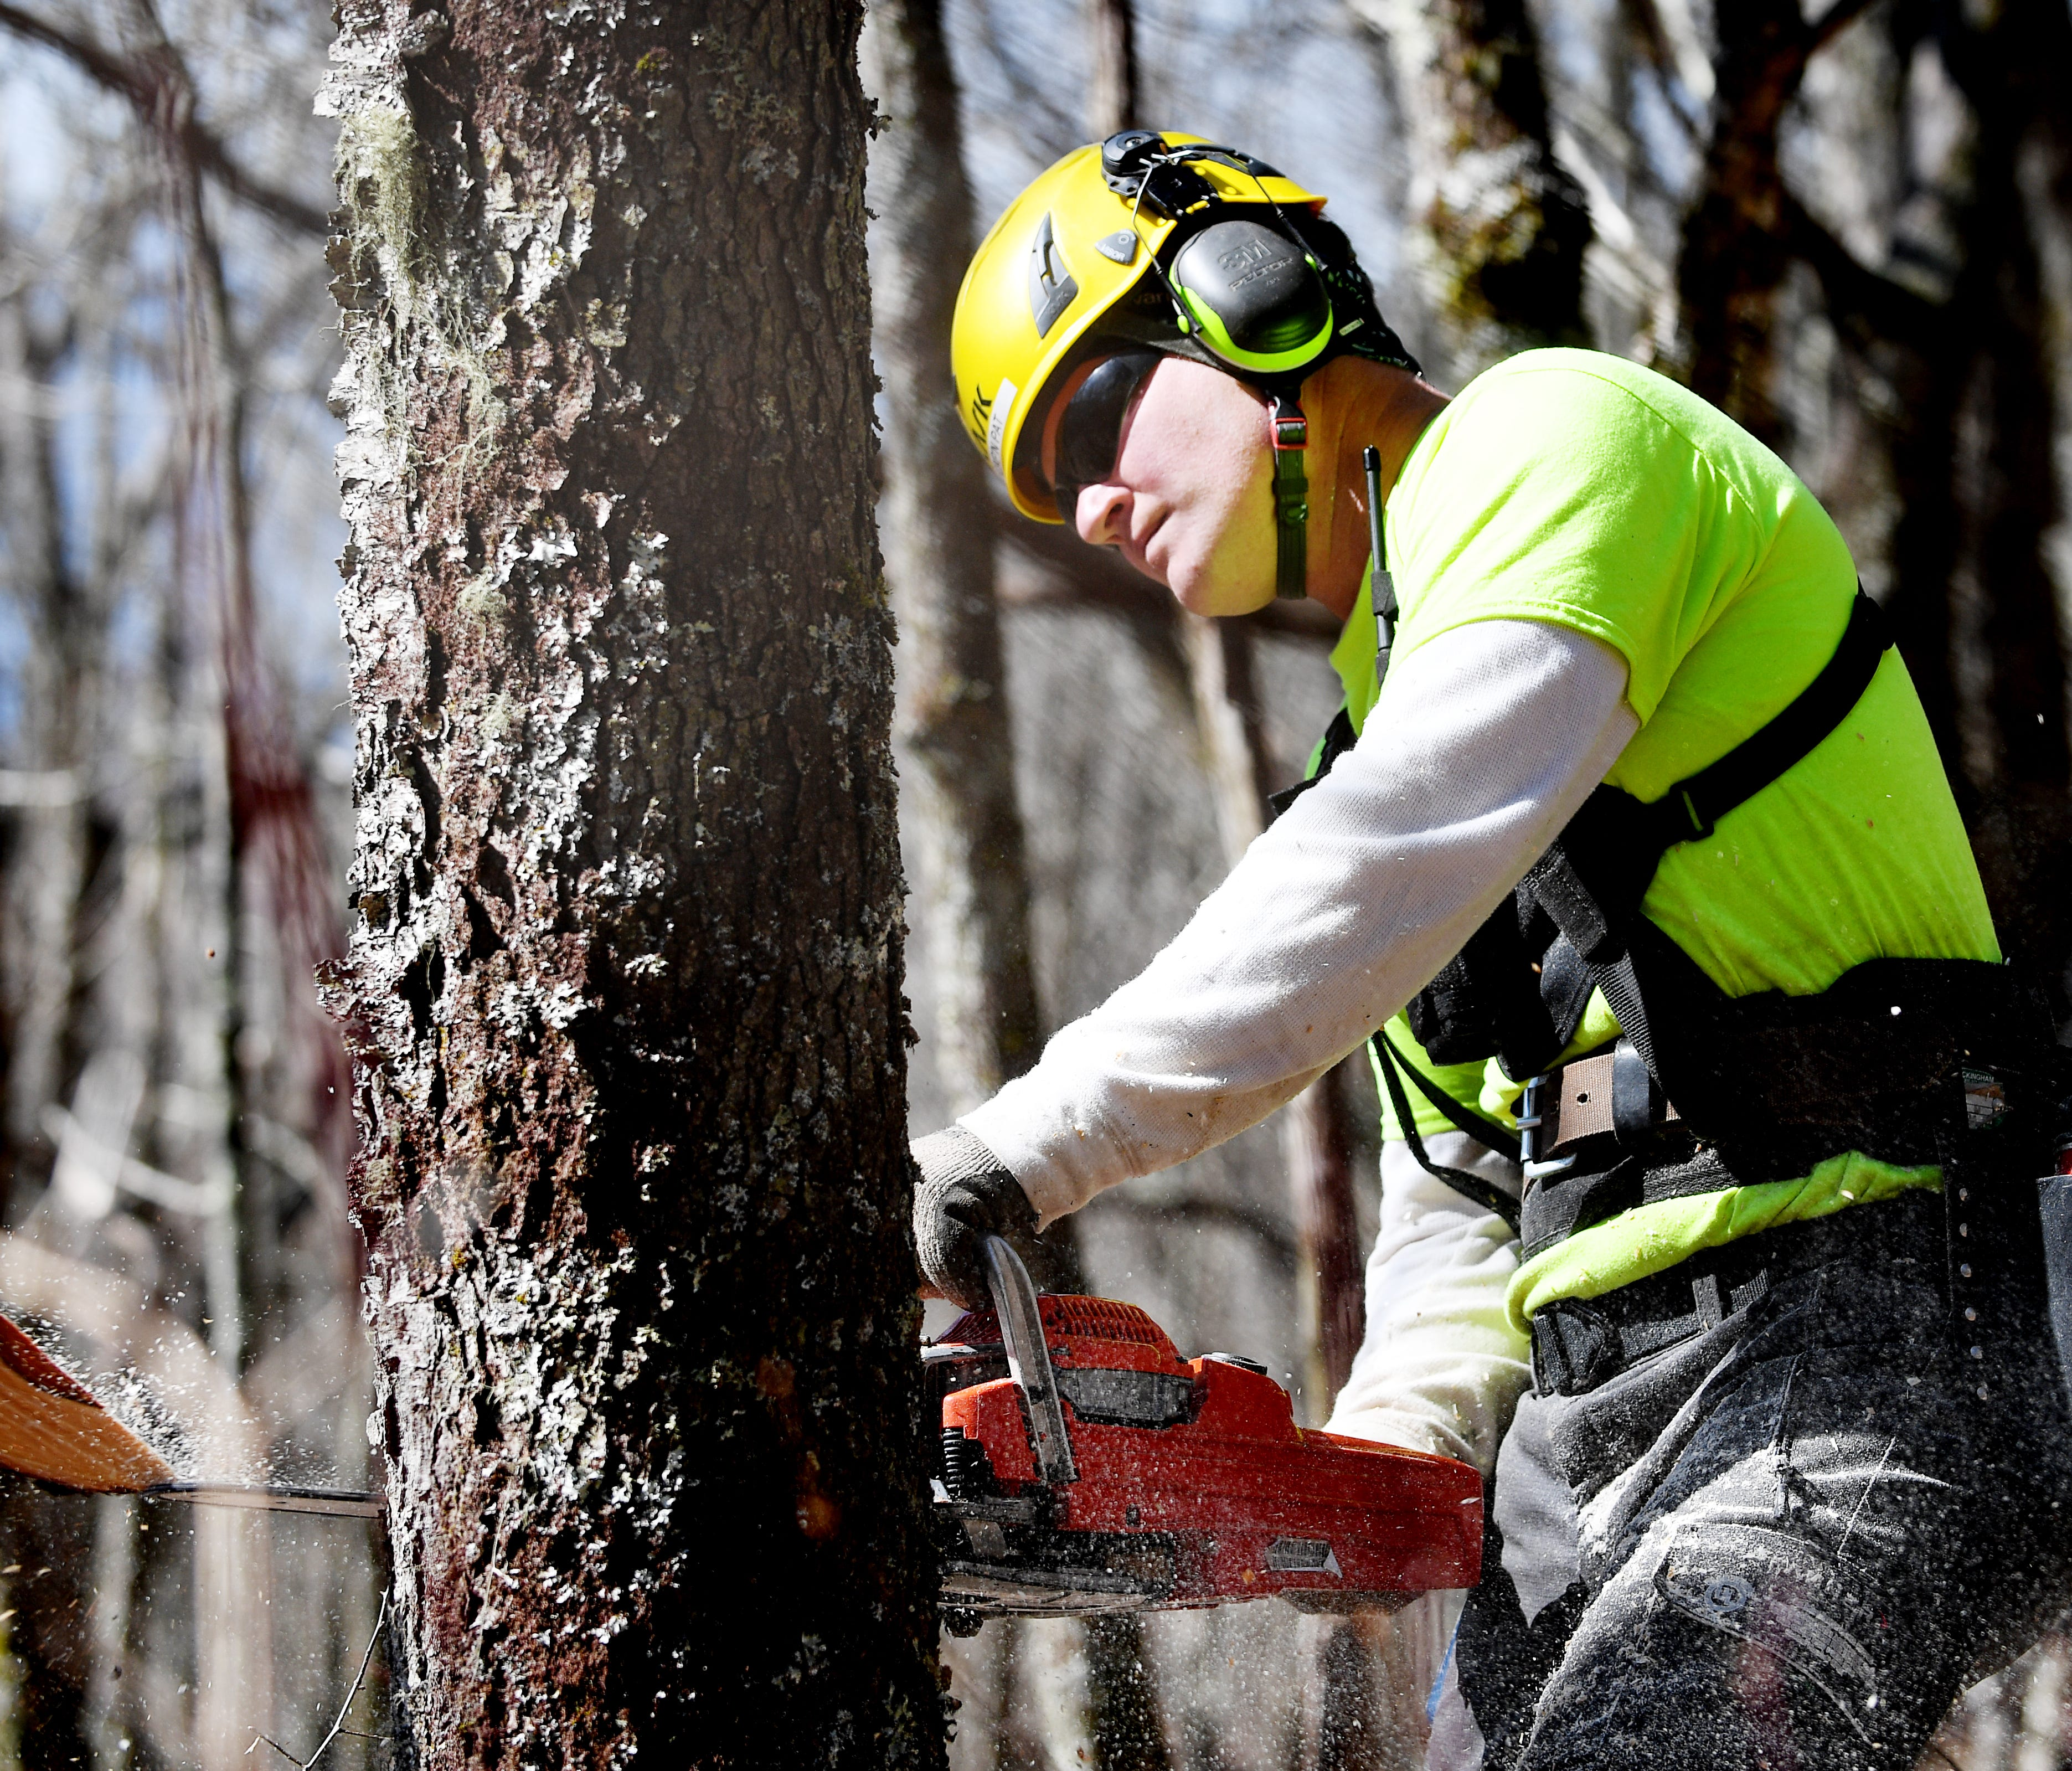 Patrick Kane, a member of the Arborist Incident Response Team, clears a vista along the Blue Ridge Parkway April 13, 2018. Kane is with the Cuyahoga Valley National Park in Ohio.